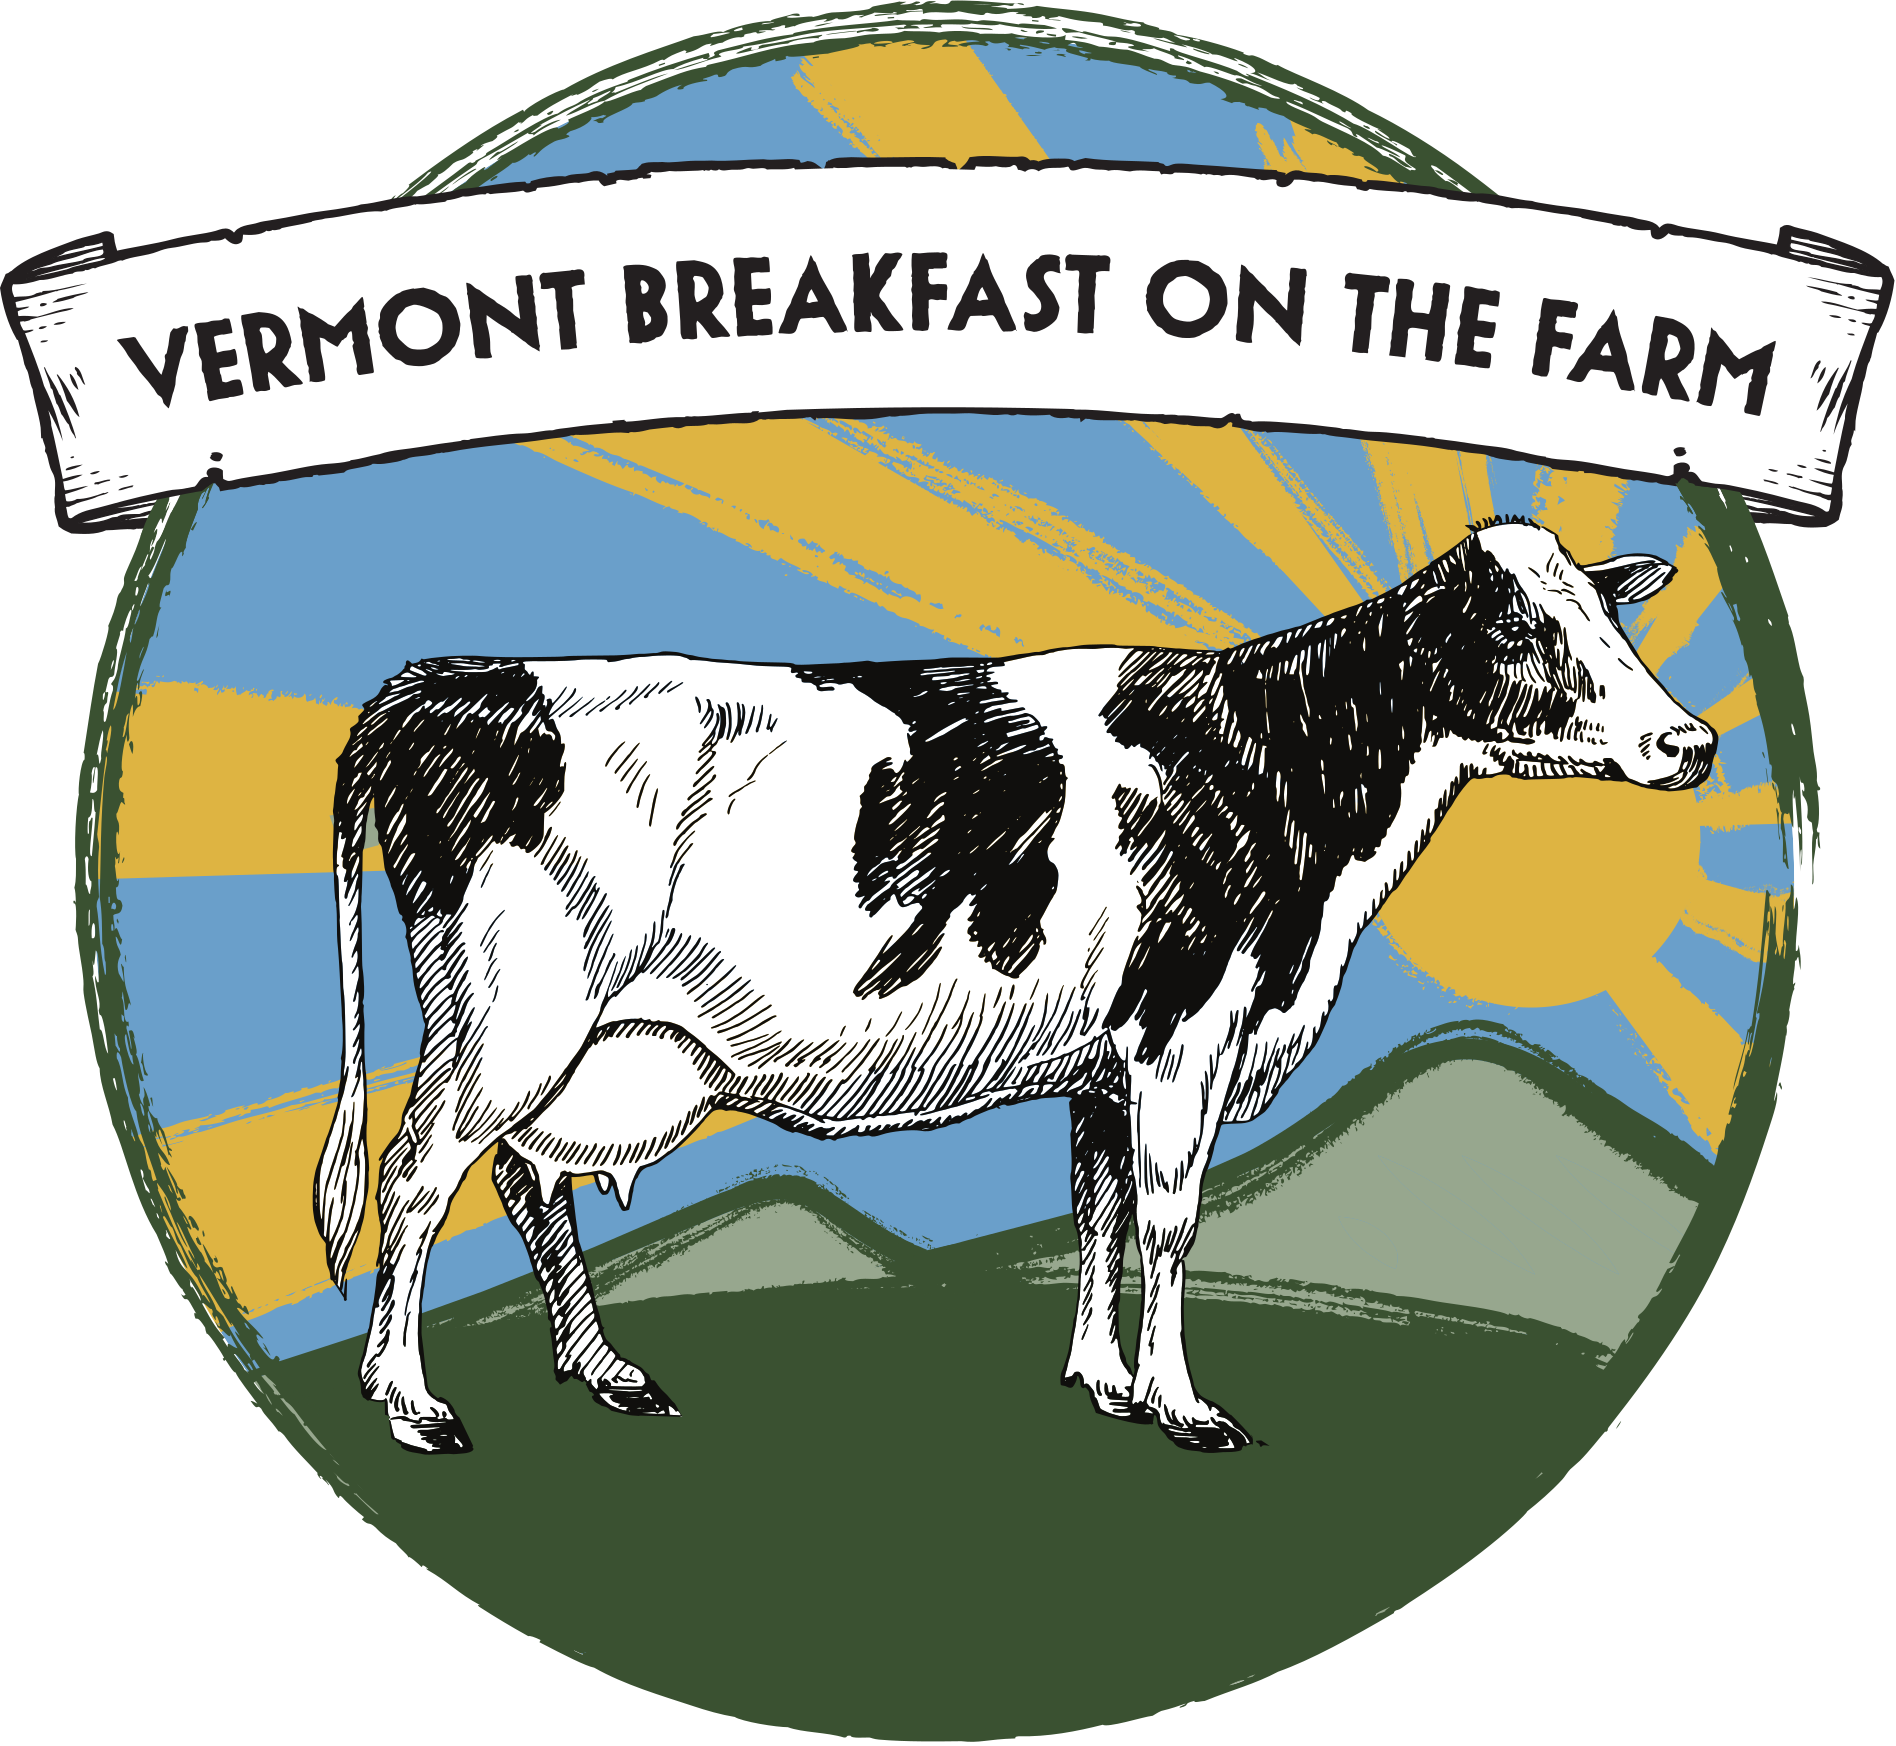 Vermont Breakfast on the Farm